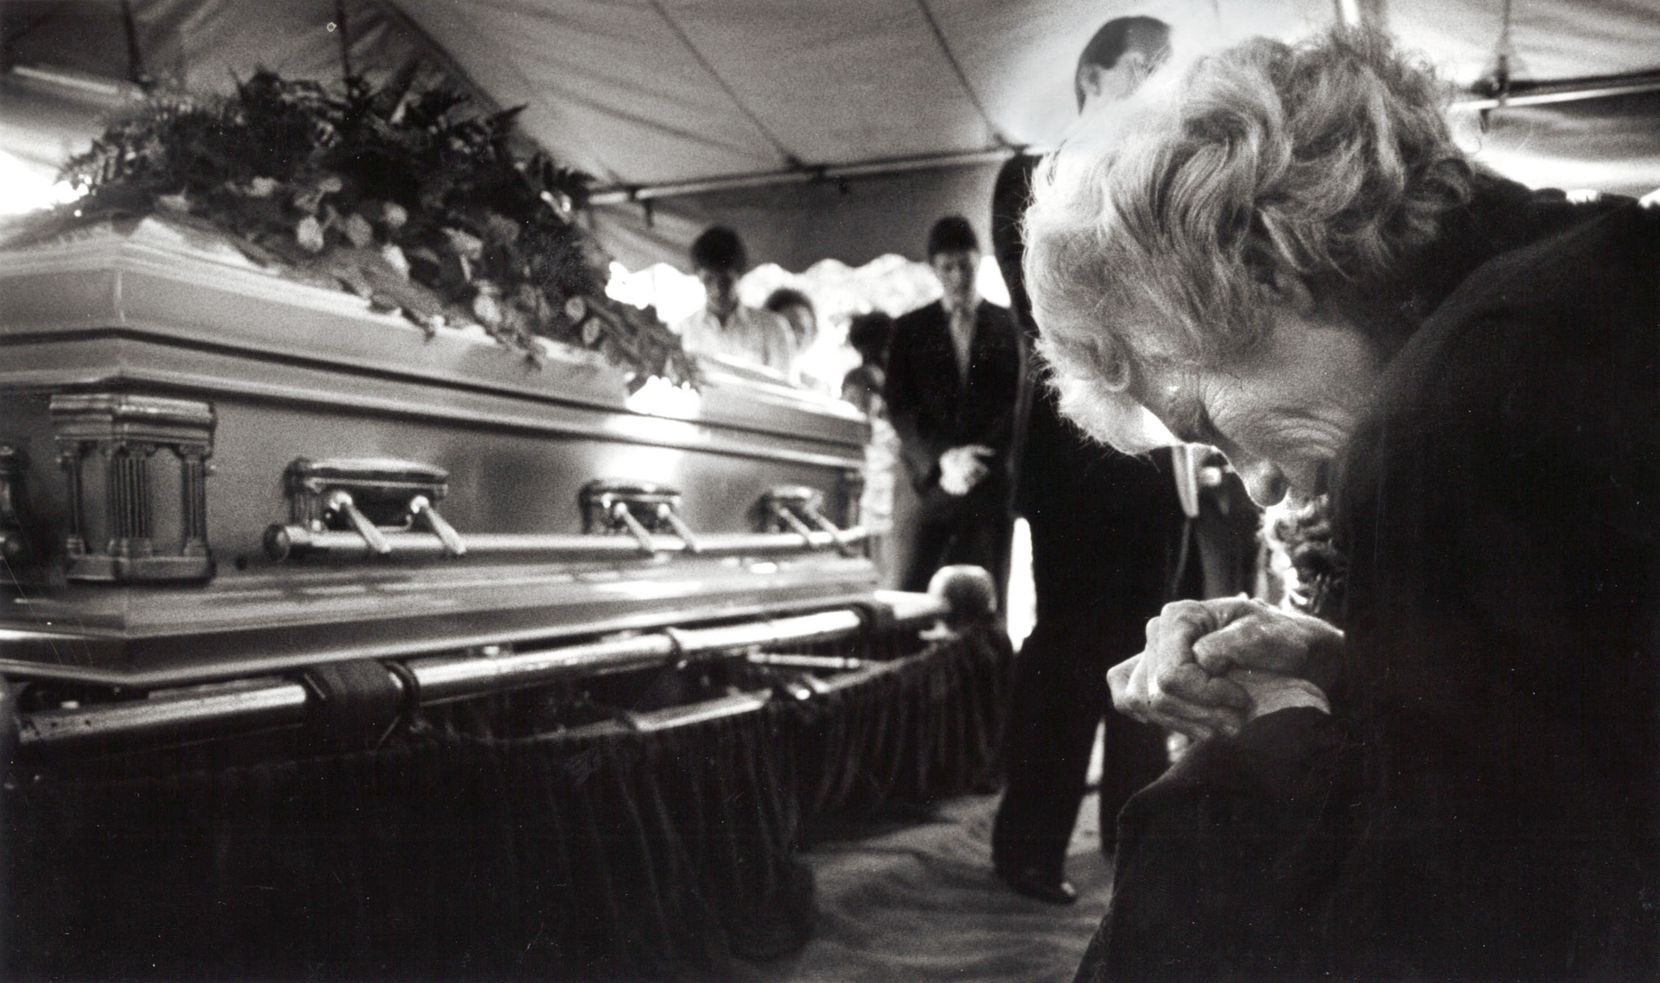 Doris Adkisson bows her head and prays for her son Mike Von Erich during his funeral services in Dallas in April, 1987.